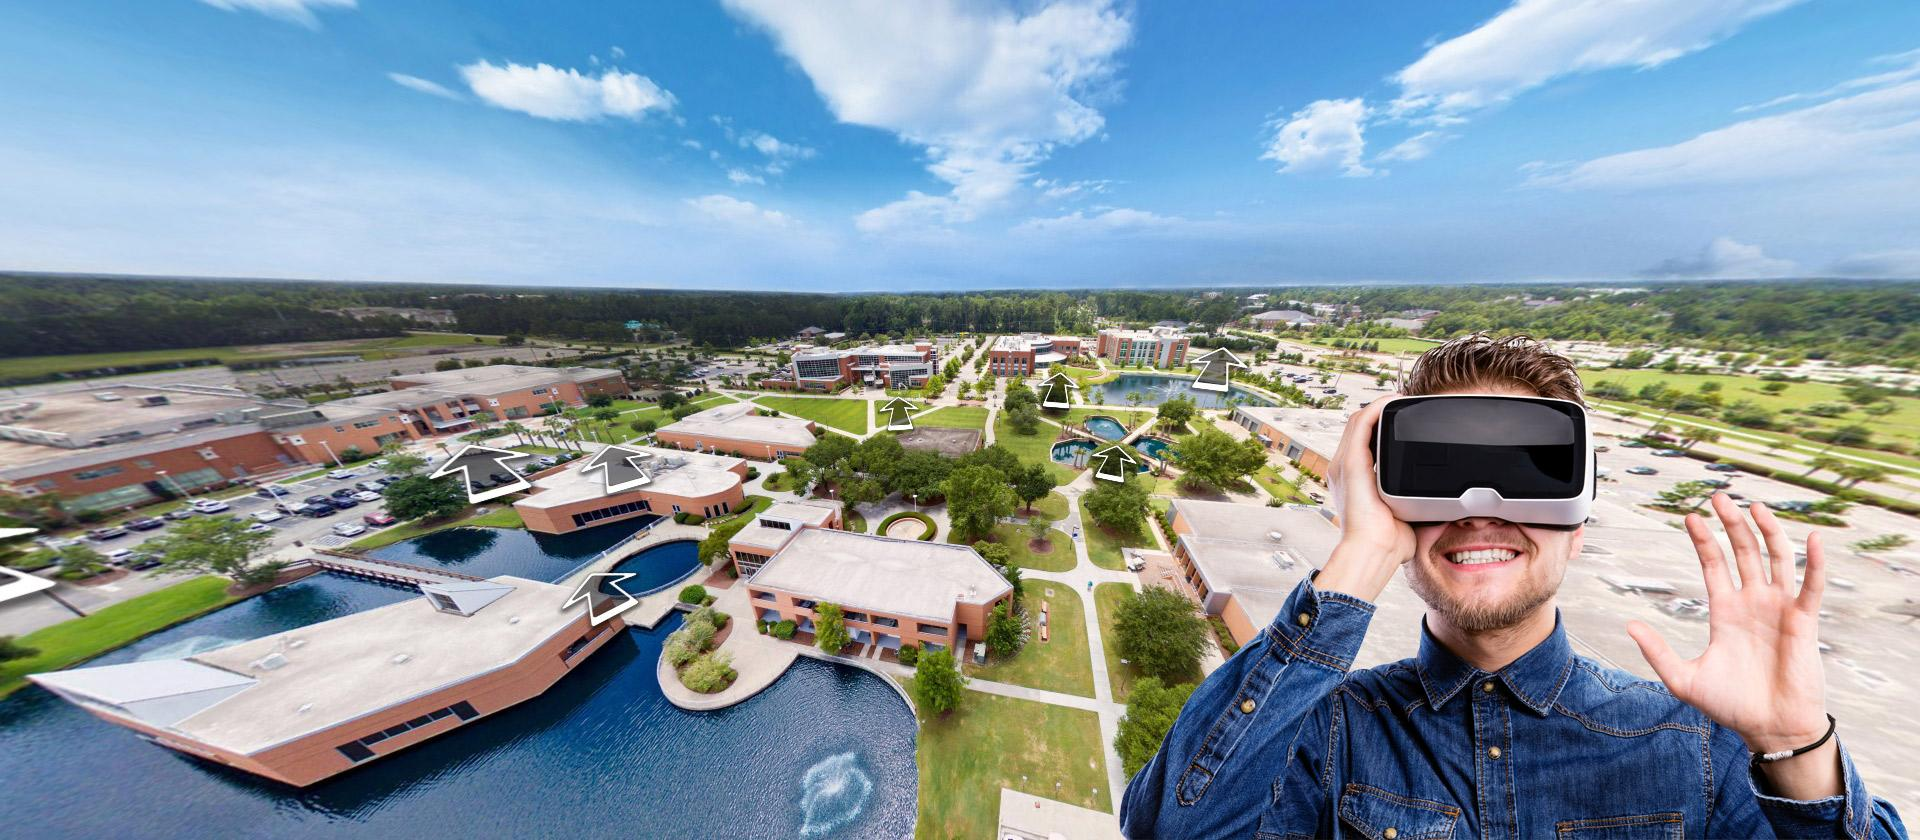 Take a 360-degree tour of each of our campuses, either on your desktop, laptop, phone, or VR headset.